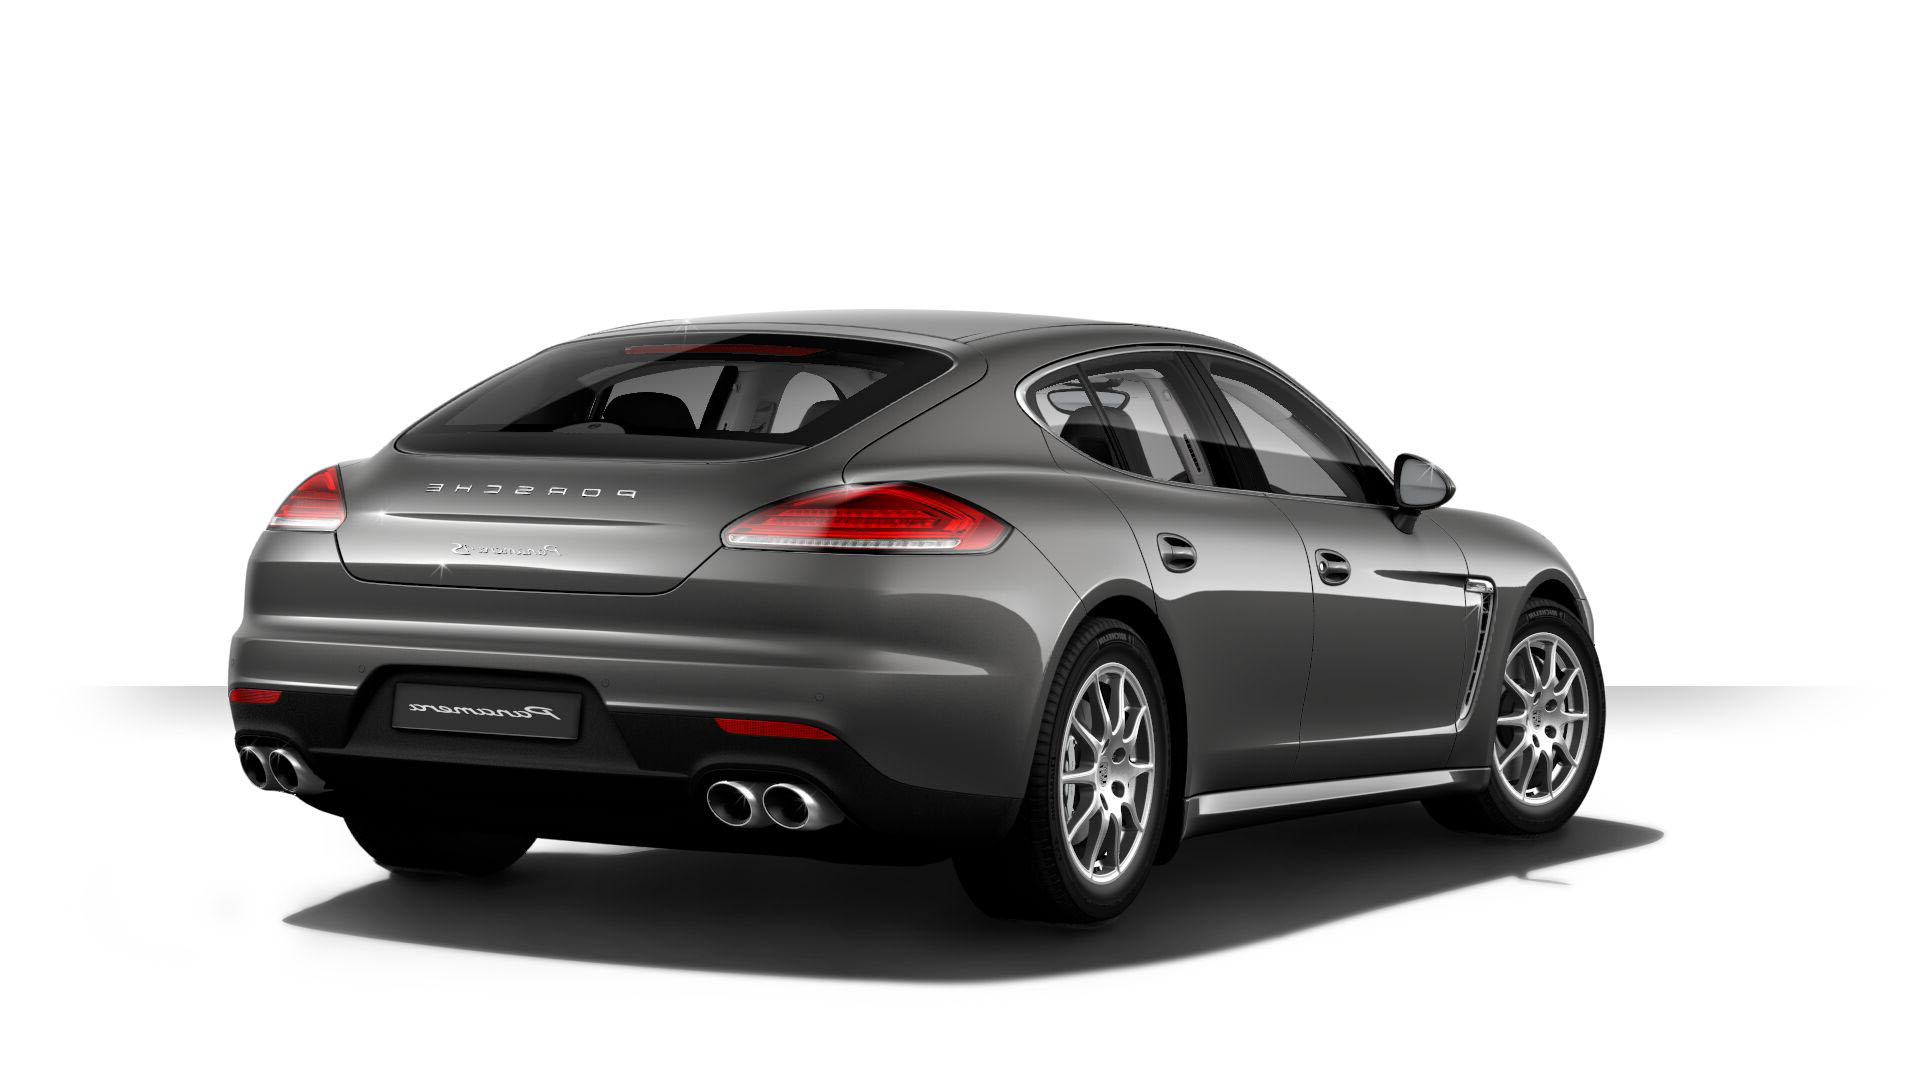 2016 porsche panamera vs 2017 porsche panamera exterior design details. Black Bedroom Furniture Sets. Home Design Ideas